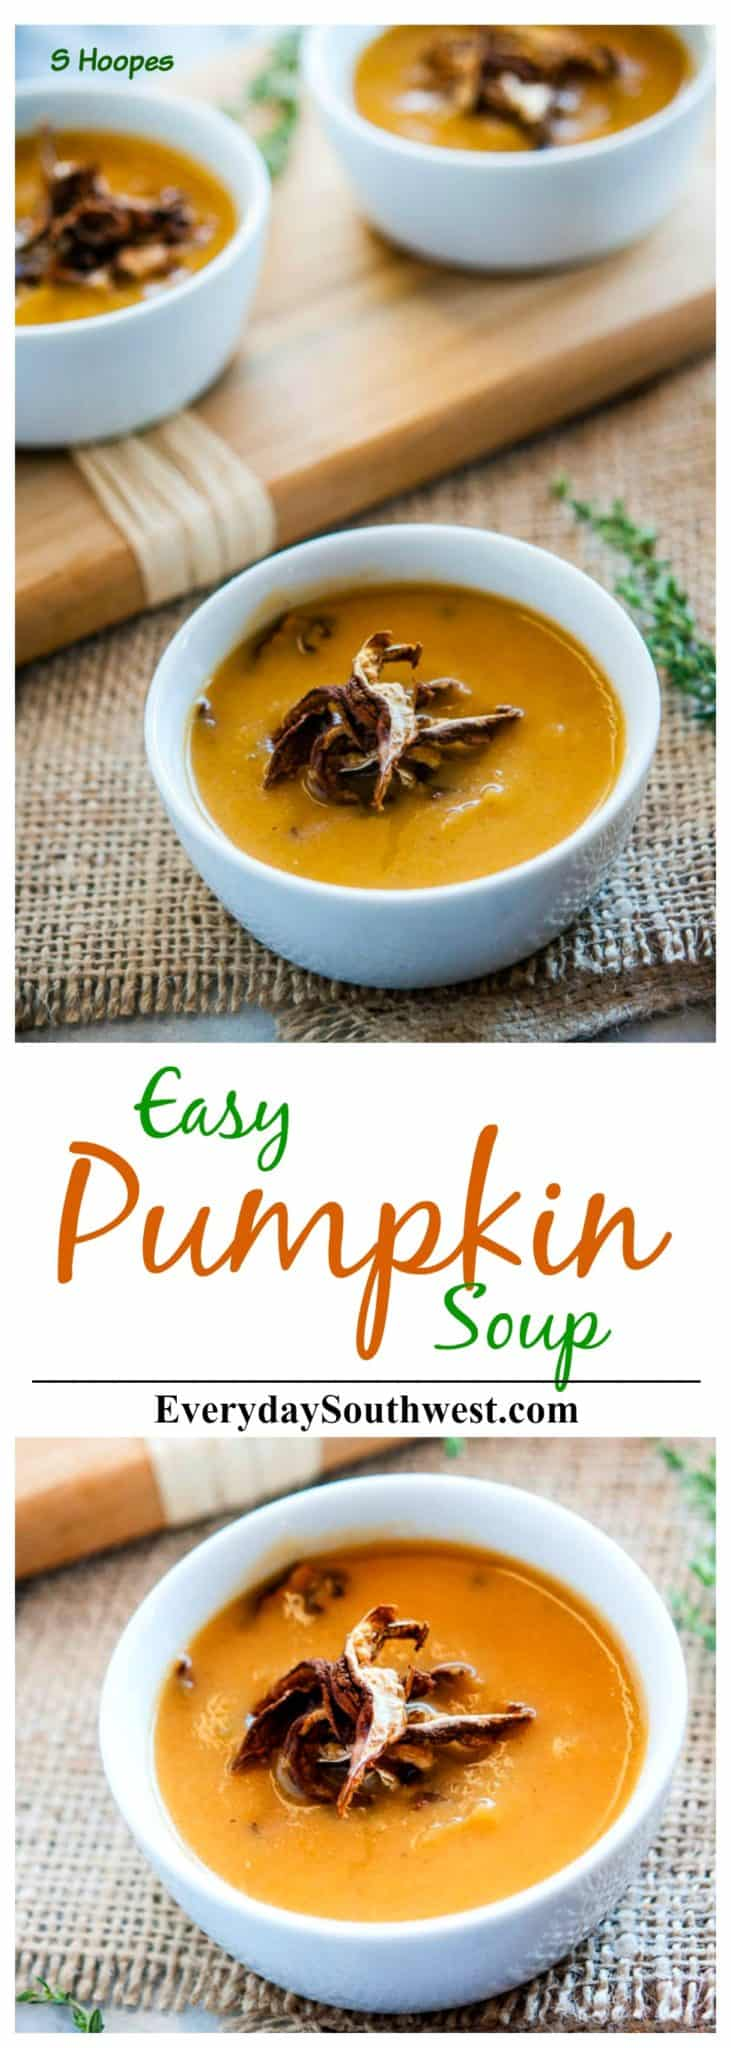 Thanksgiving Soup Recipe with Mushroom Soup Garnish